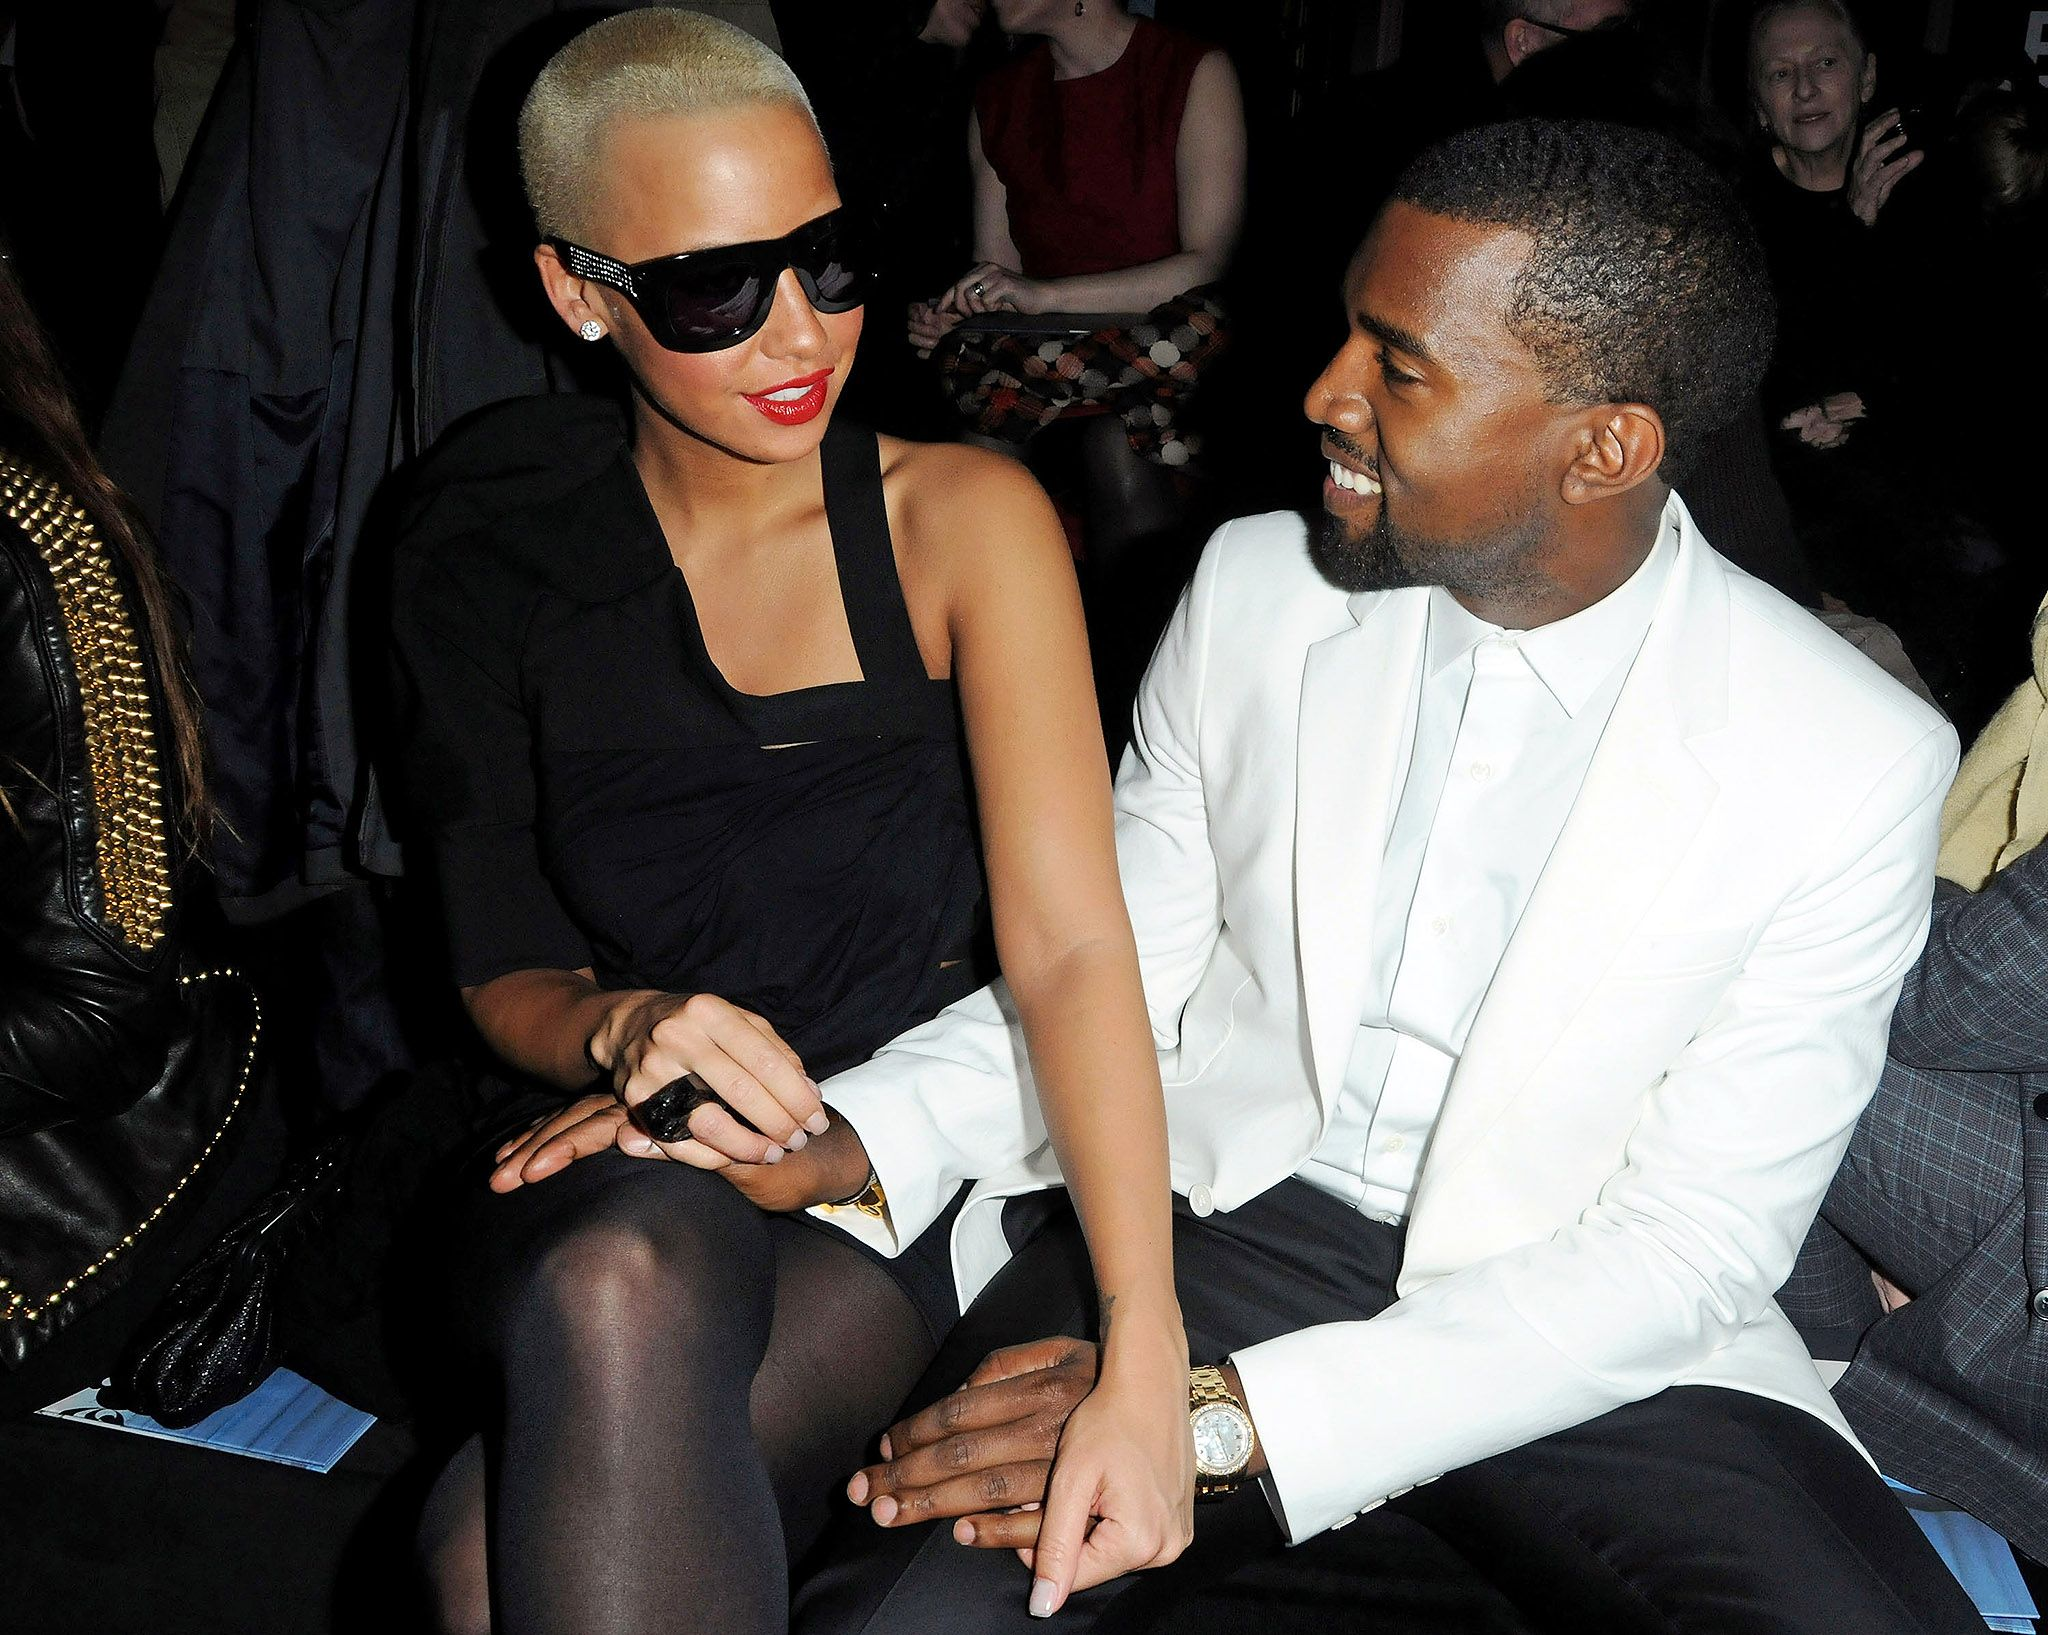 Kimye's Wedding Countdown A Look Back at Kanye West's